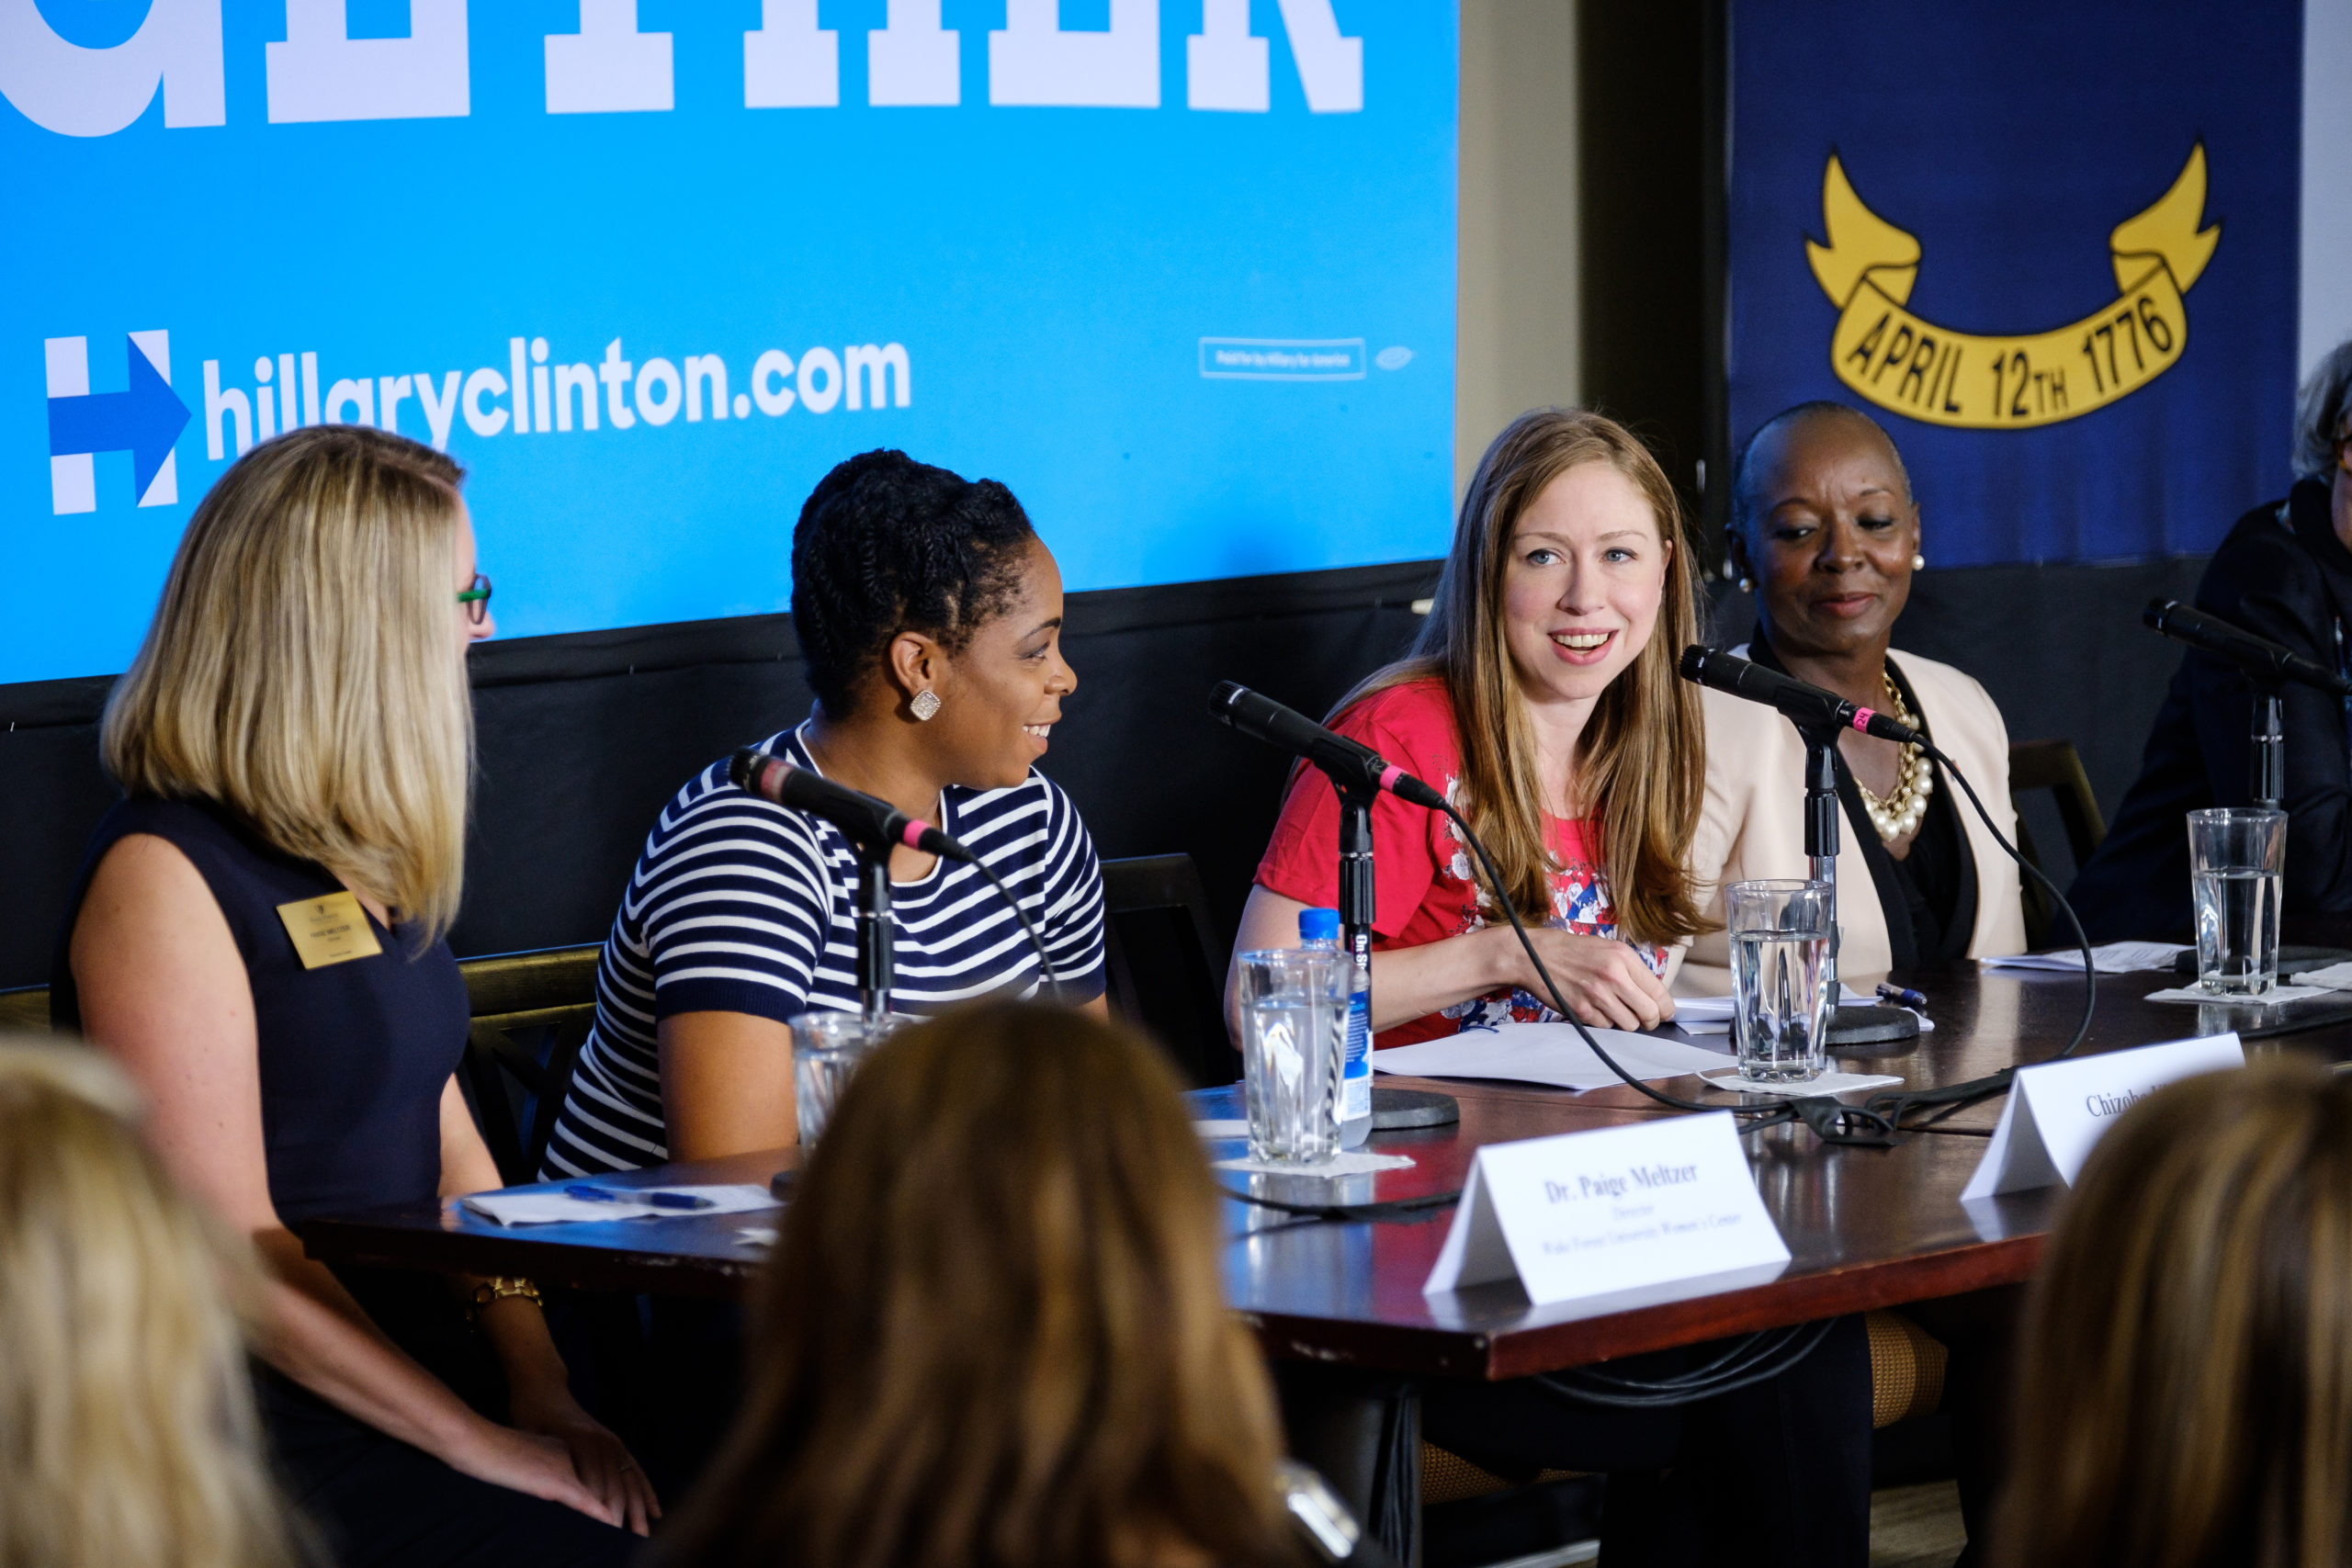 Chelsea Clinton holds a panel discussion on women and leadership in Reynolda Hall on the campus of Wake Forest University on Tuesday, September 13, 2016, part of her campaign for her mother, Hillary Clinton. The panelists are moderator Paige Meltzer, director of the Women's Center at Wake Forest; Chizoba Ukairo ('17), a Wake Forest senior and student leader; Denise 'DD' Adams, Winston-Salem Council Member; and Libba Evans ('74, MBA '78), iActive Learning and University Trustee.